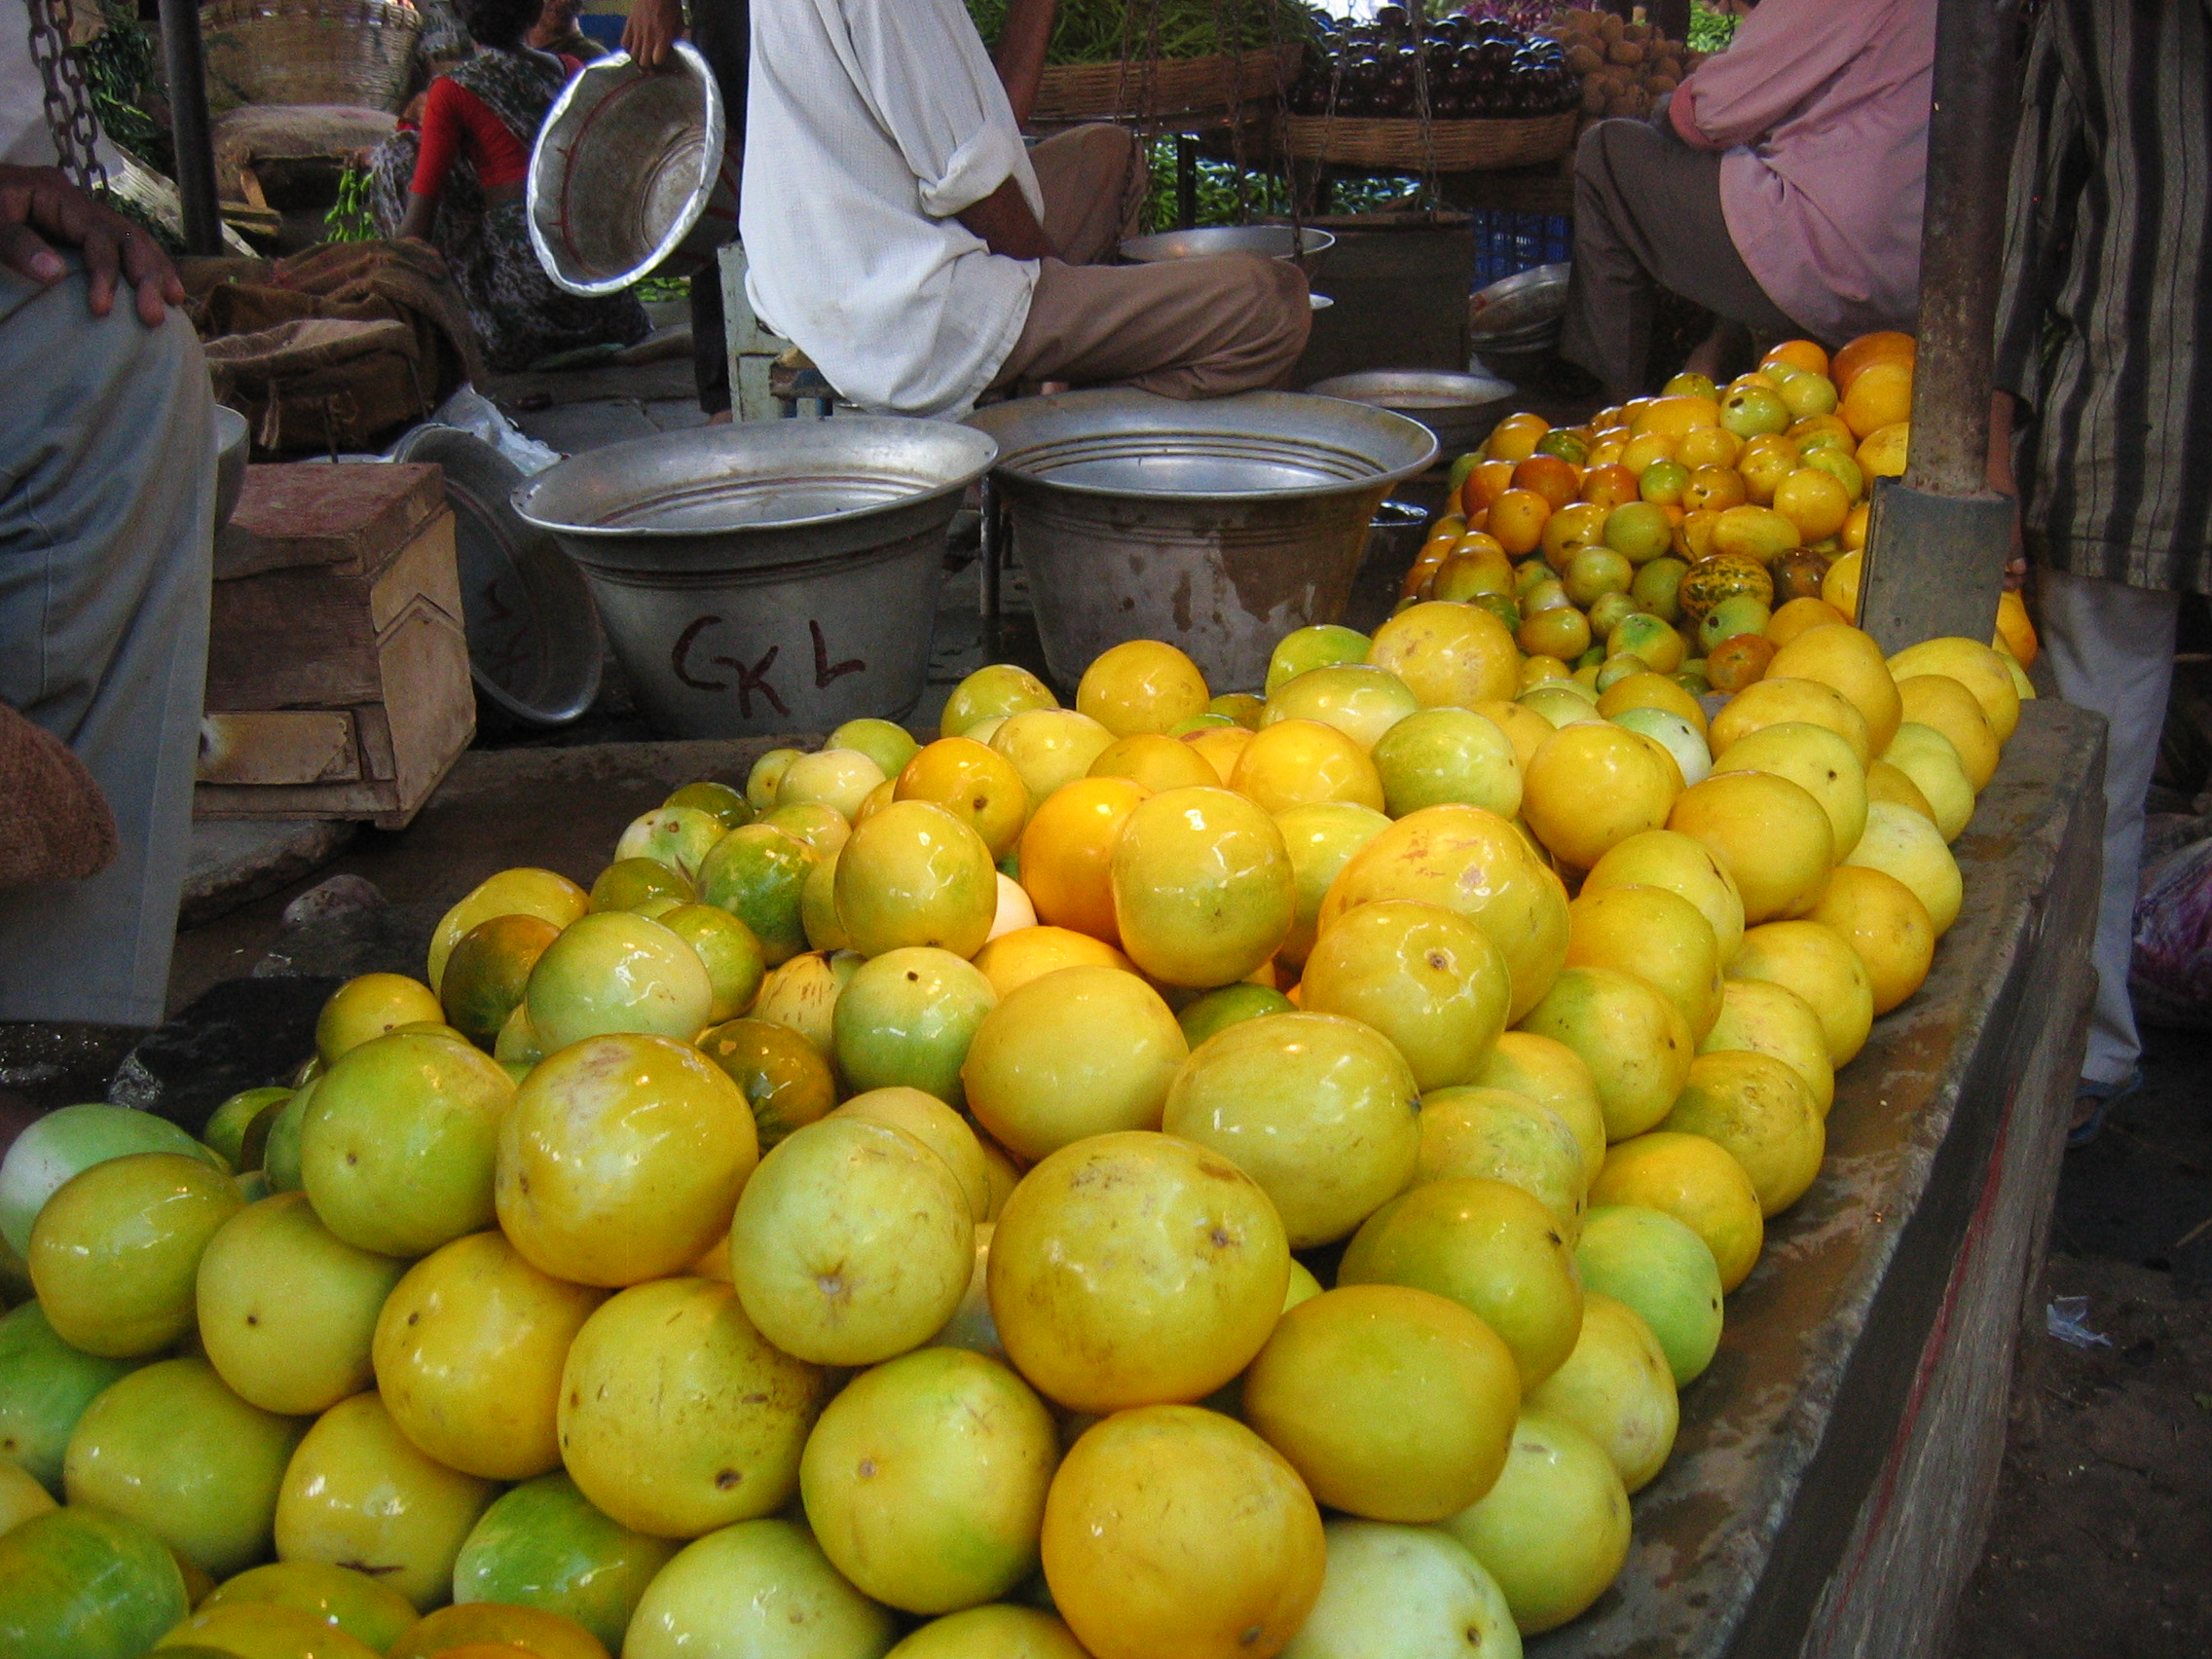 Dosakai is a round, yellow, cucumber seen here at a market in Guntur, India